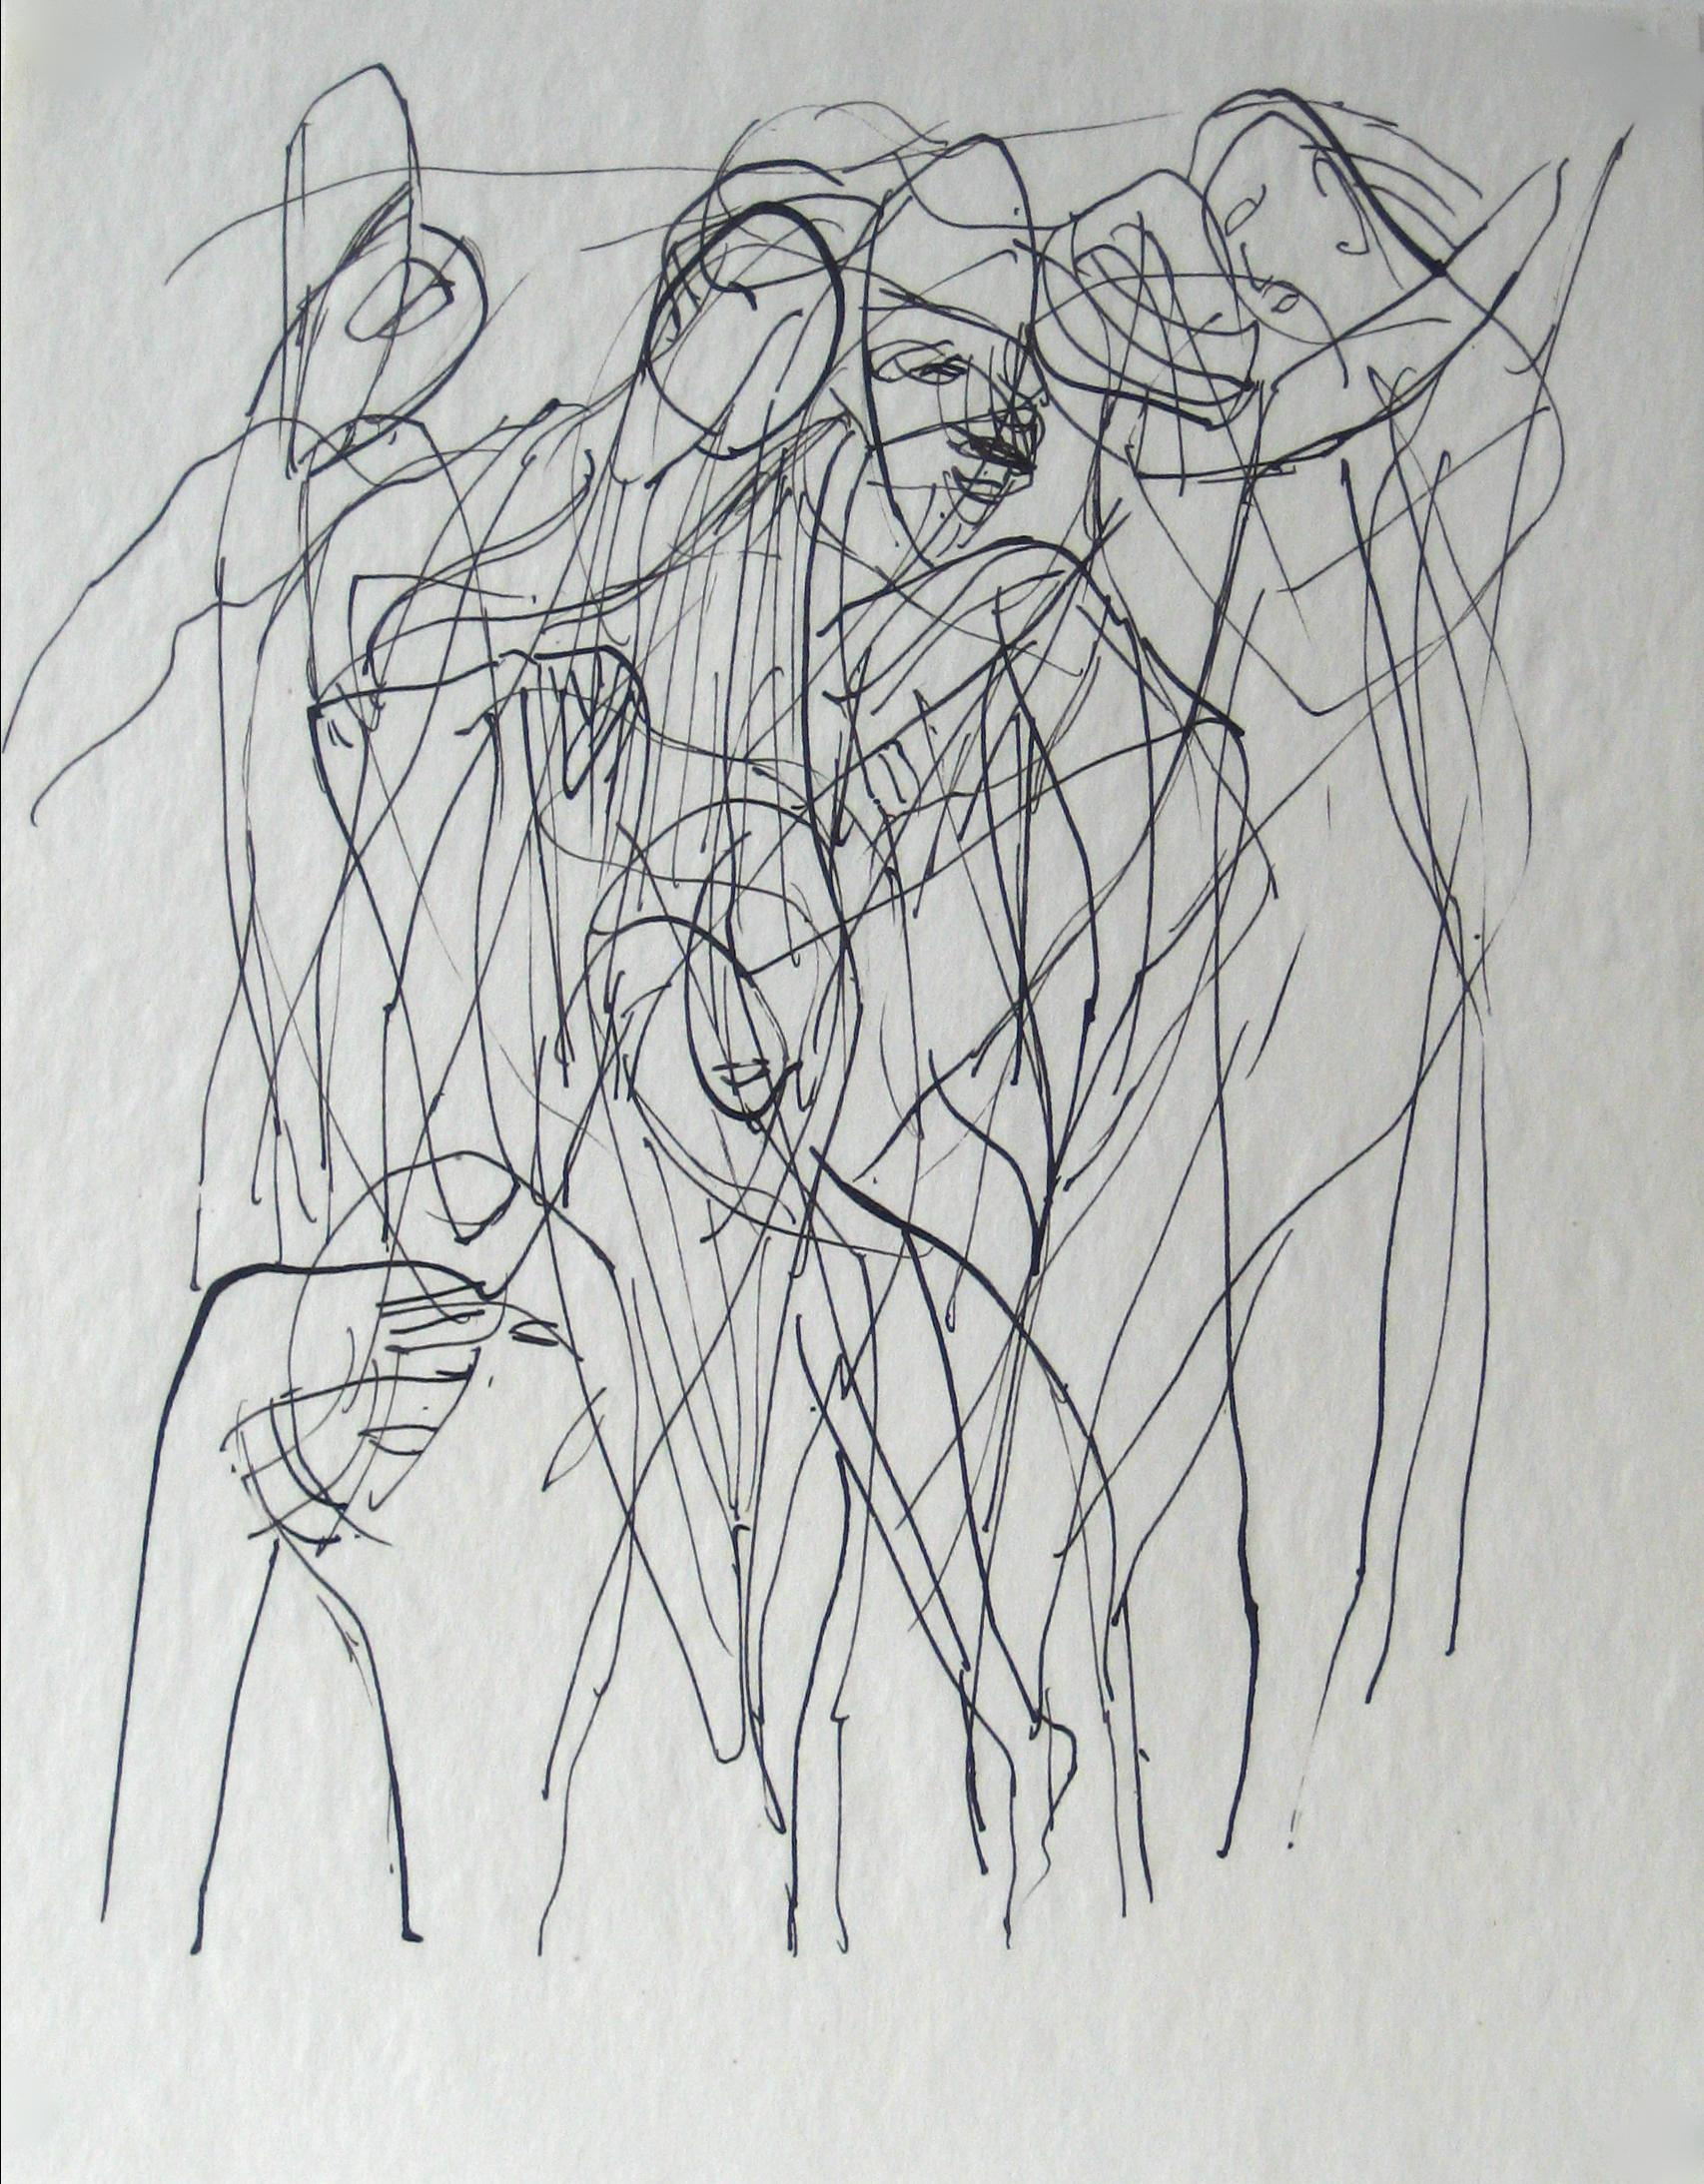 Abstracted Figures in a Scene Early 20th Century Ink on Paper